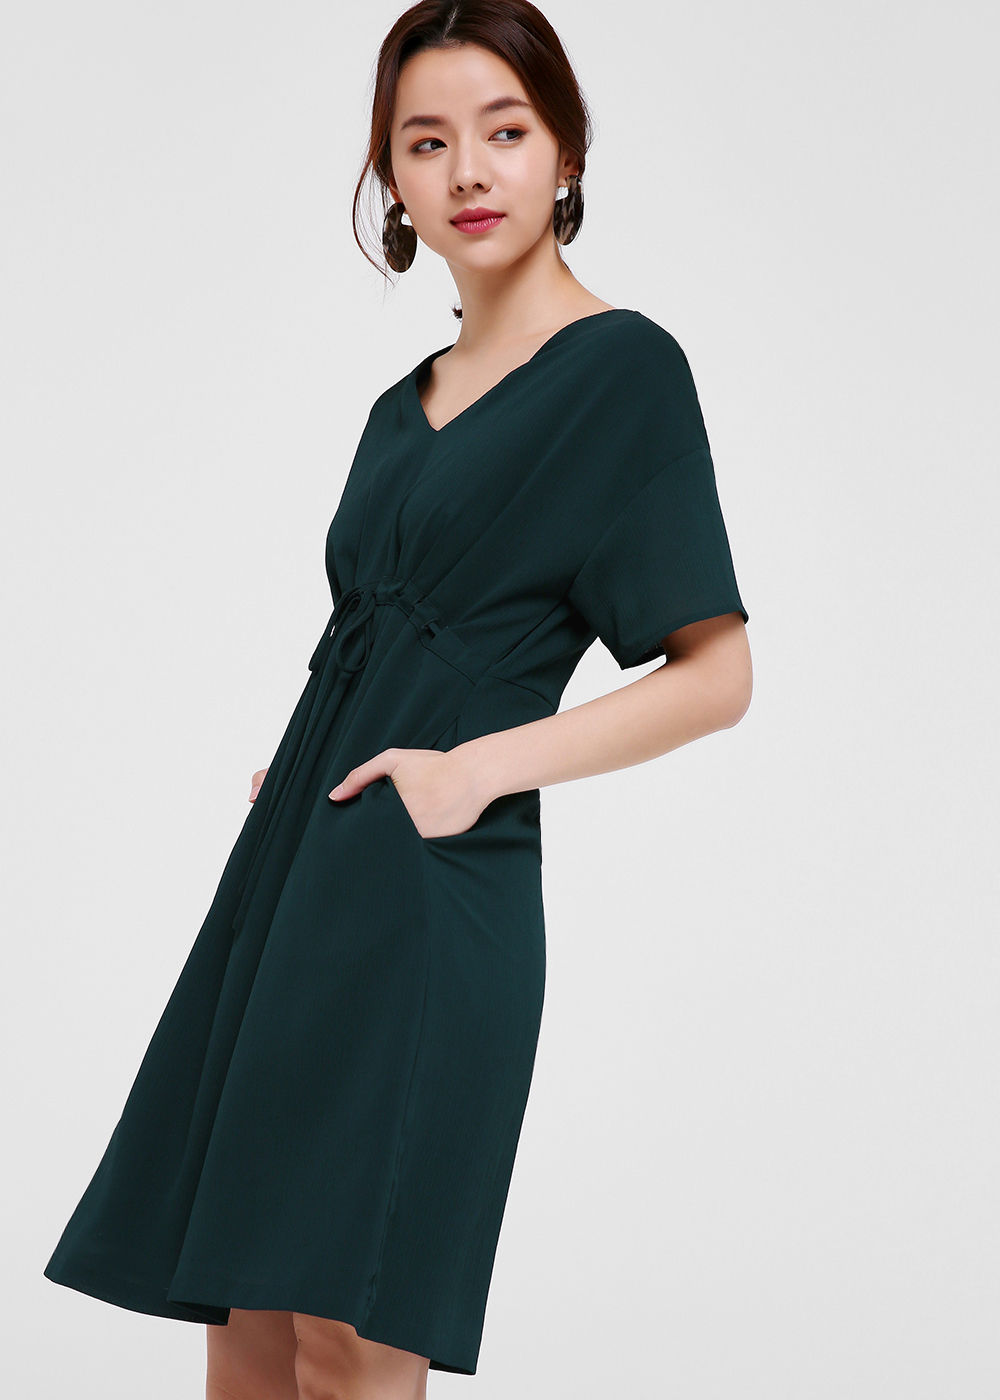 Aubrey Tie-front Gathered Dress